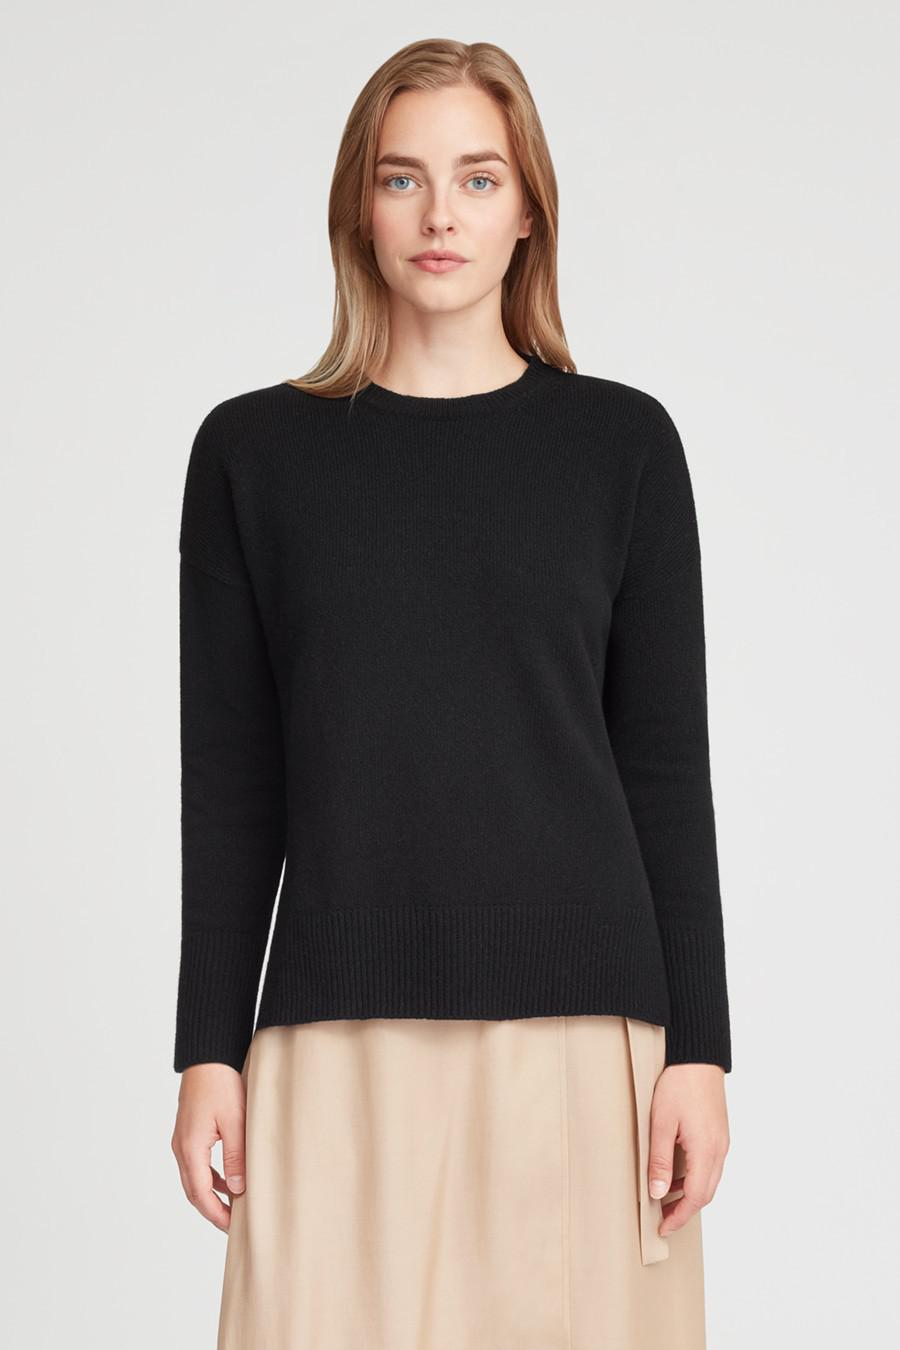 Women's Recycled Crewneck Sweater in Black   Size: 2